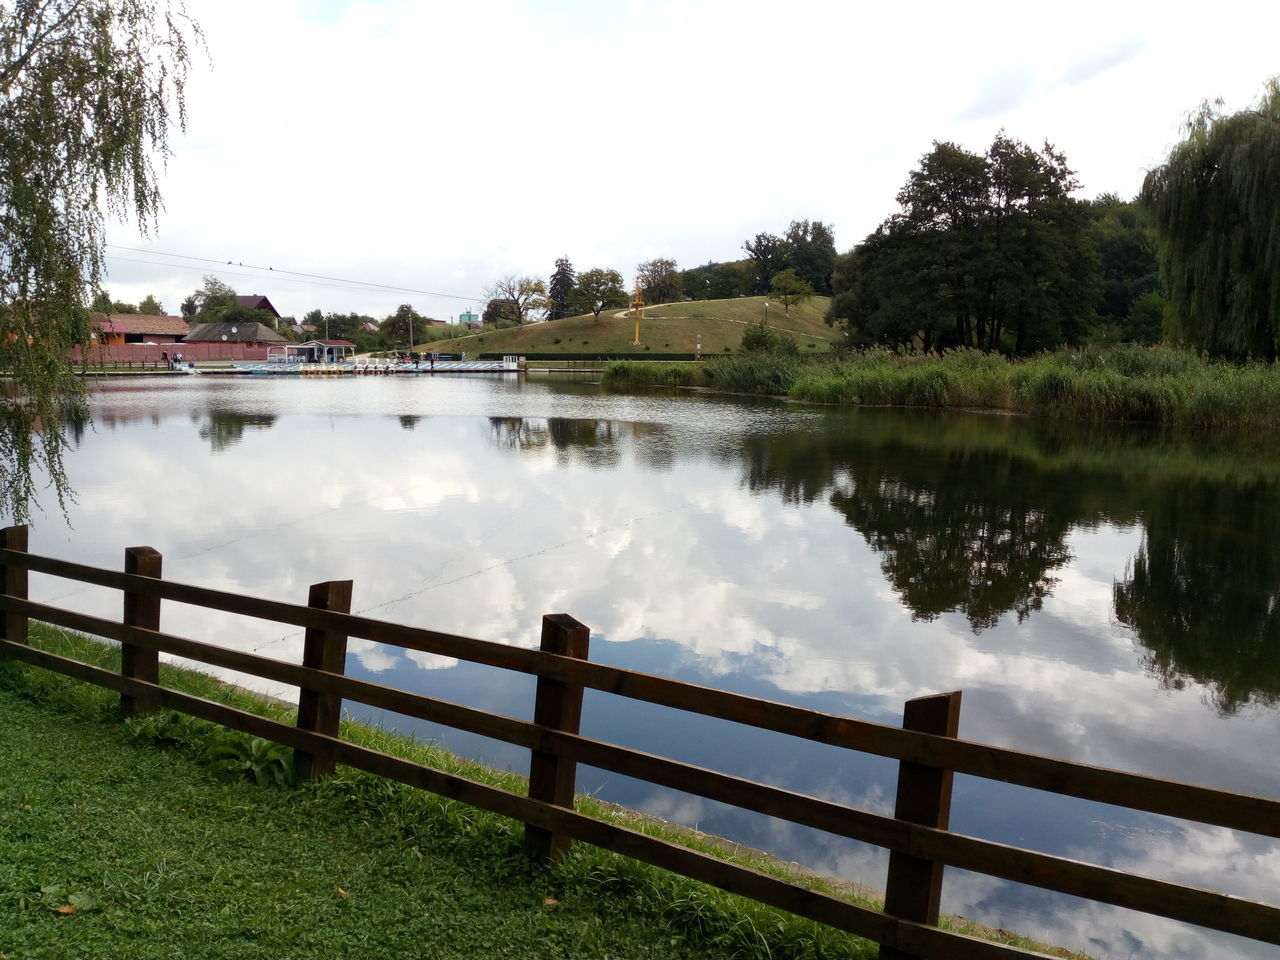 water, tree, river, reflection, nature, outdoors, railing, sky, grass, no people, scenics, day, beauty in nature, riverbank, growth, architecture